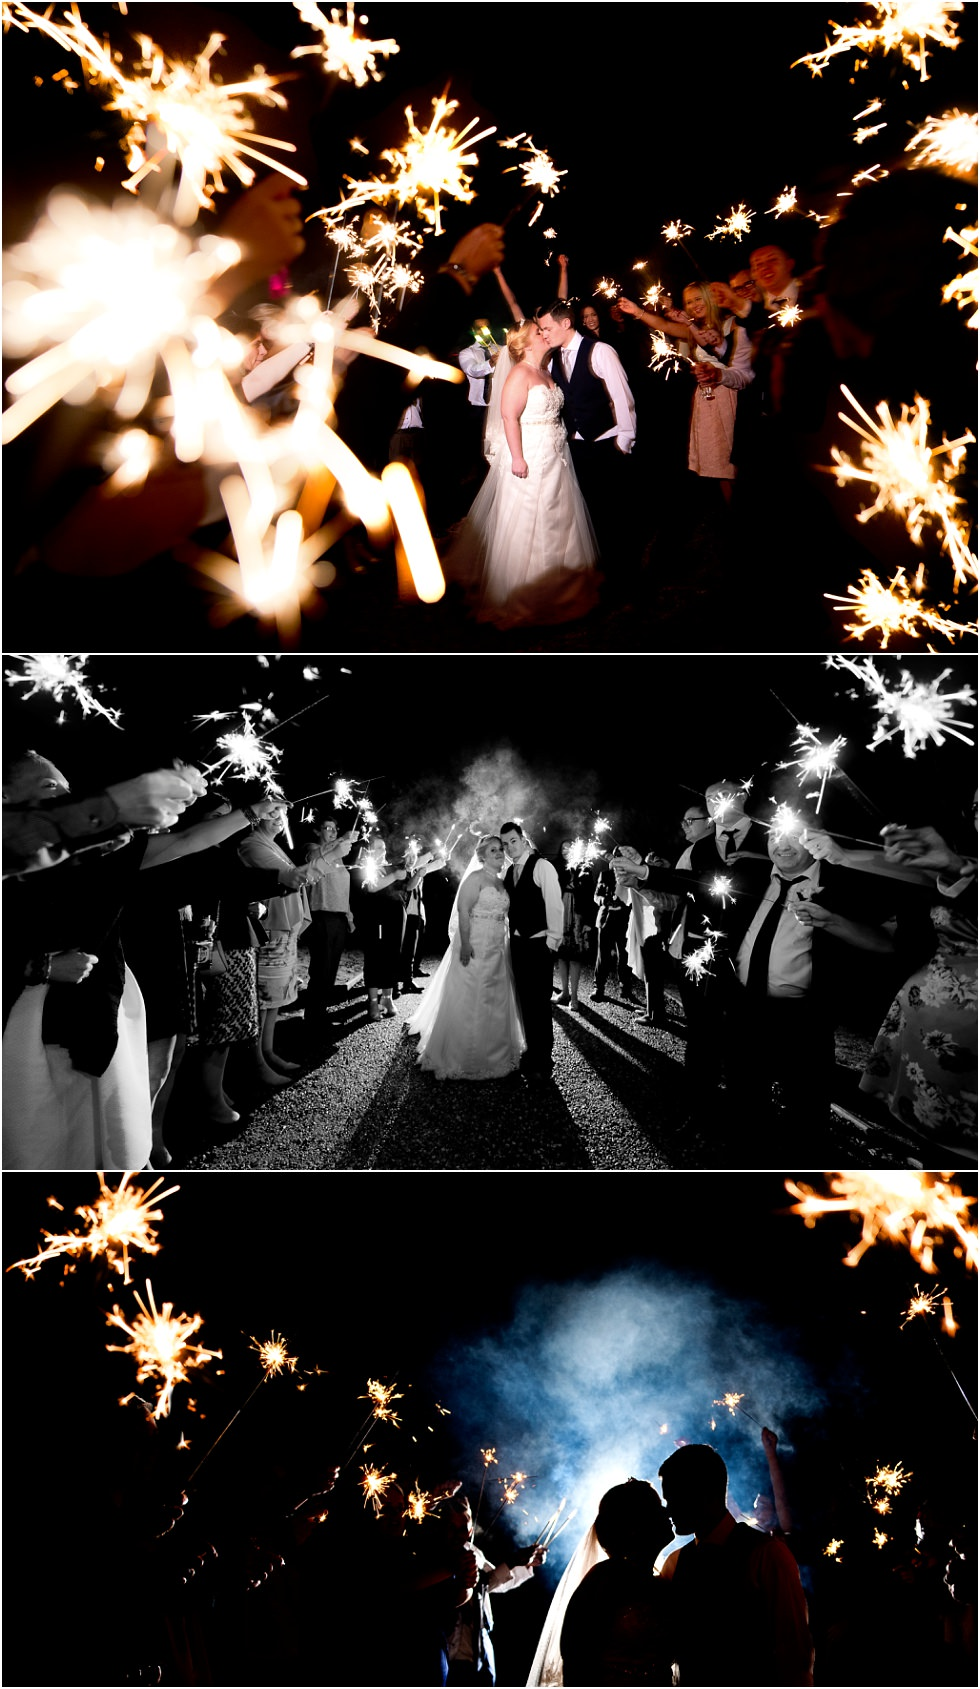 Wedding_at_The_Carriage_Hall_Plumtree_Nottingham_By_Nottingham_Wedding_Photographers_Matt_Selby_Photography_29